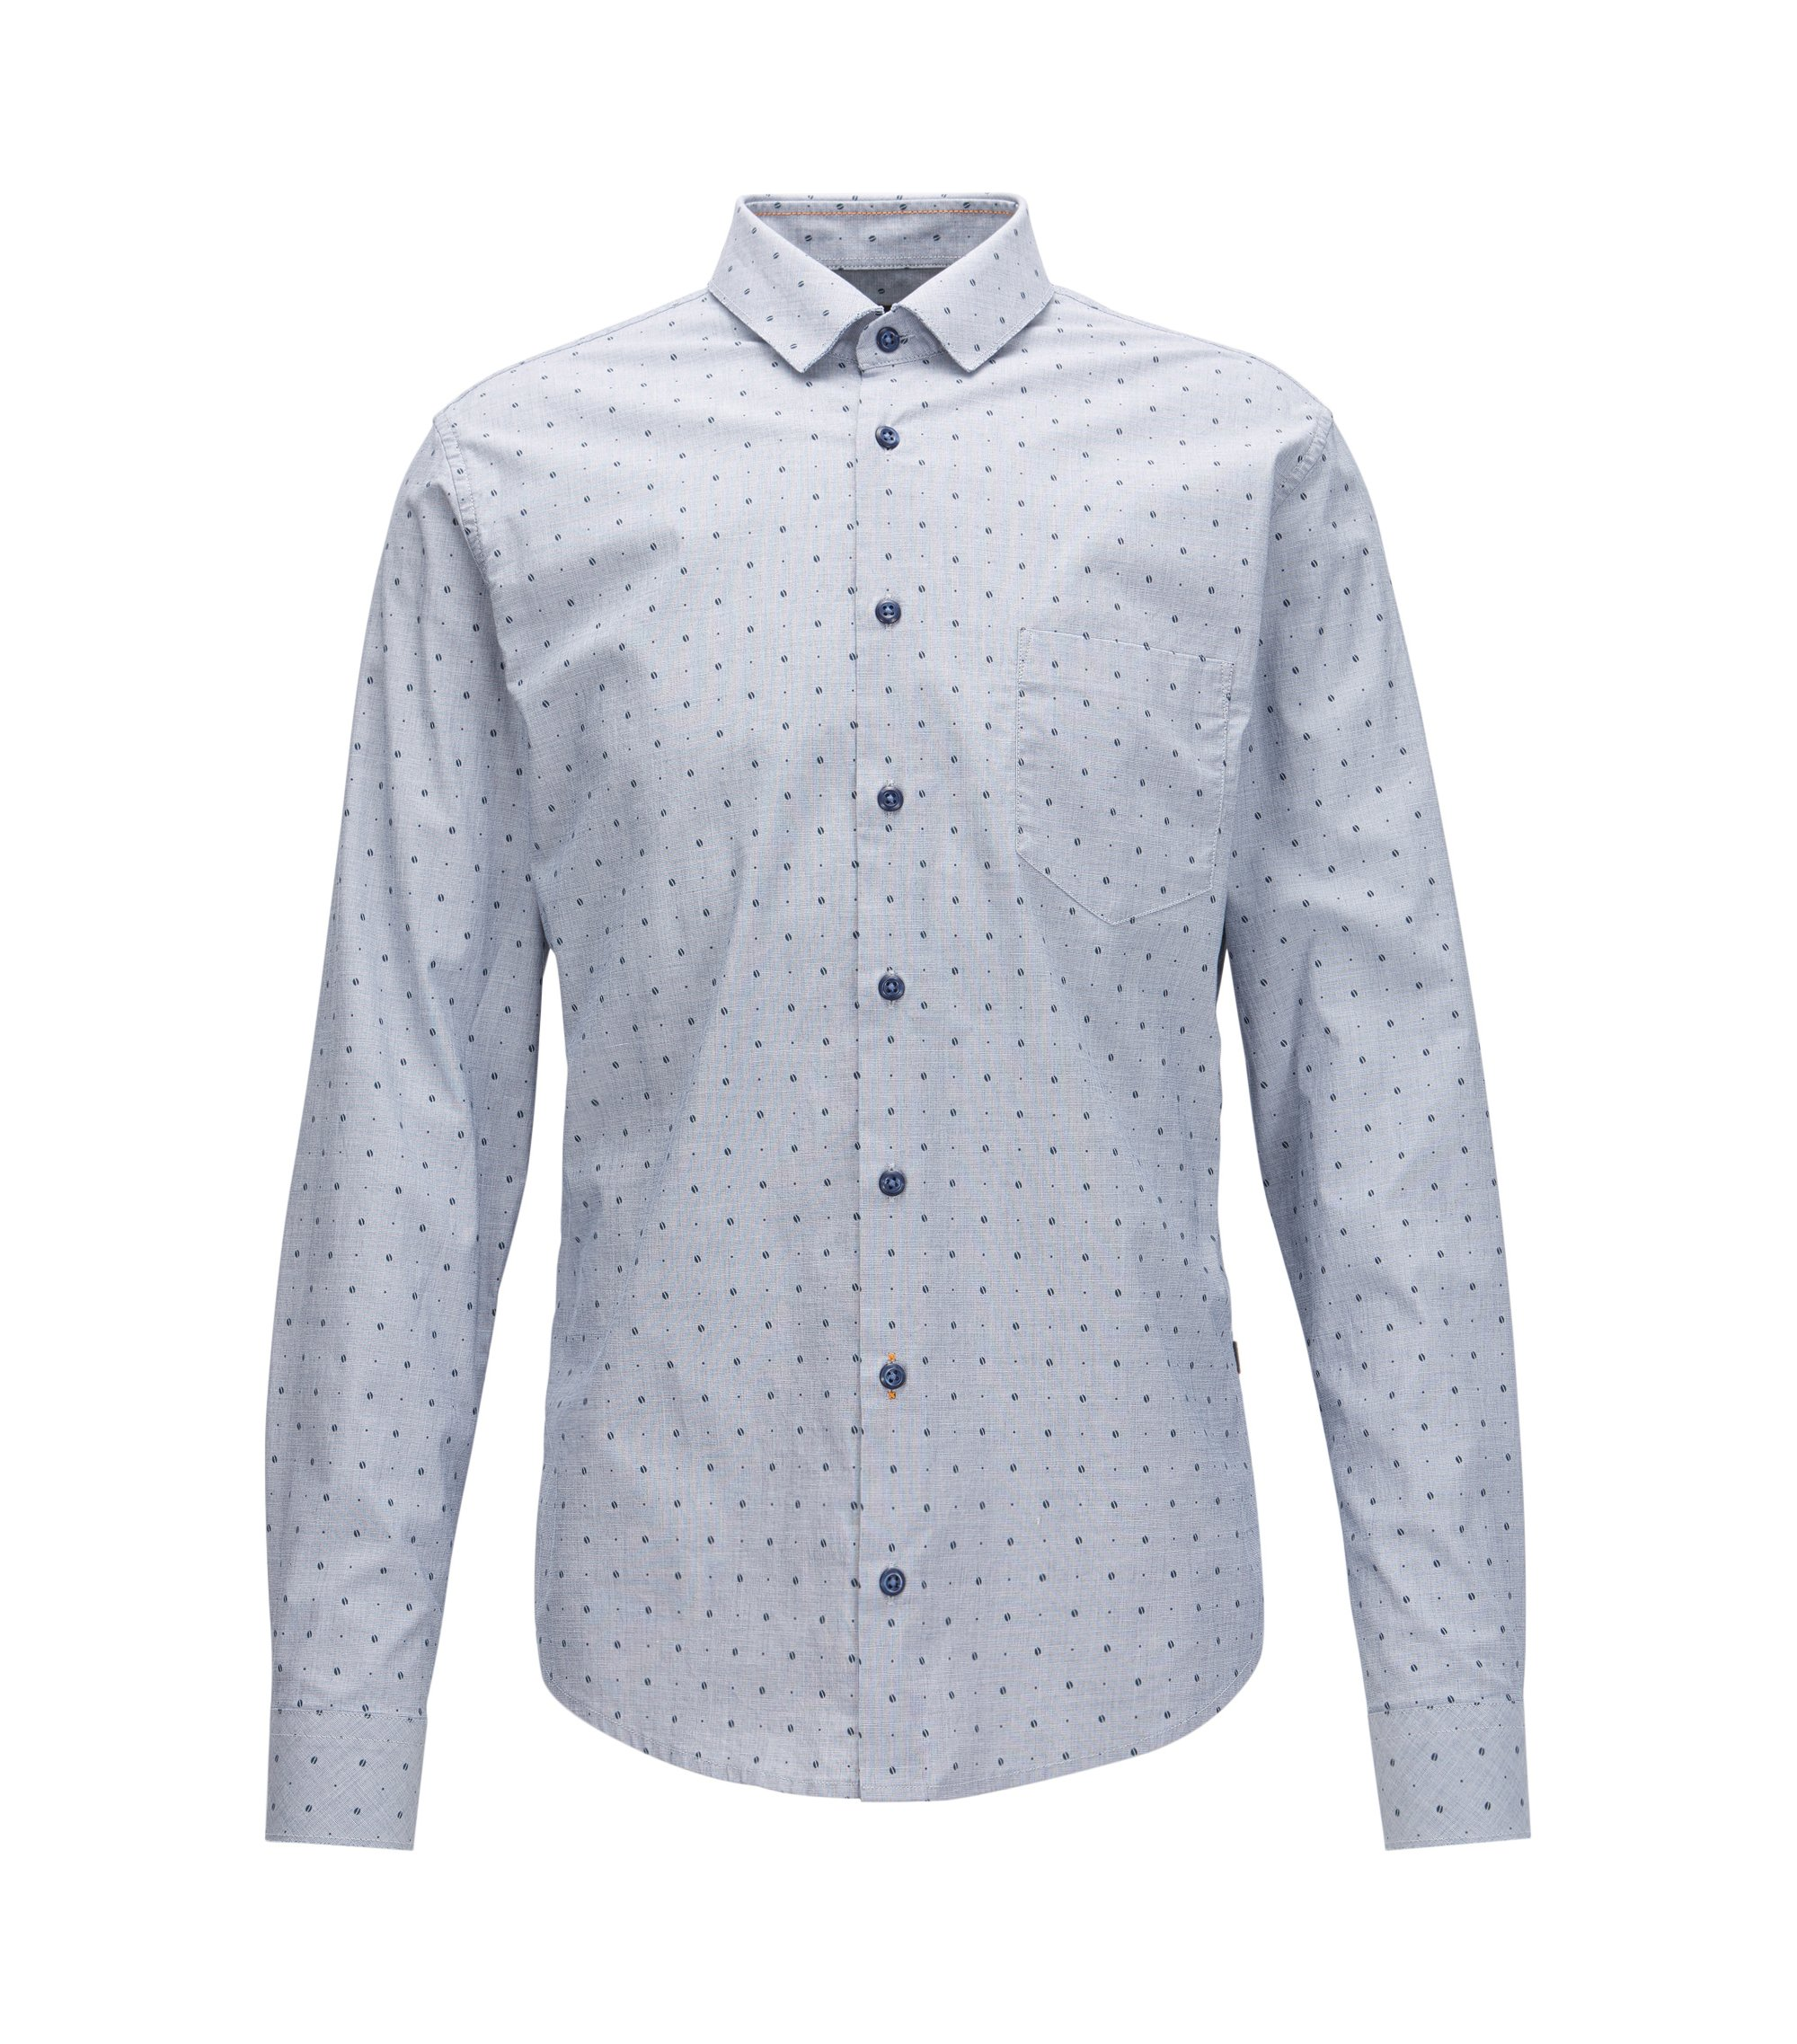 Chemise Slim Fit en coton stretch imprimé, avec bords francs, Bleu vif